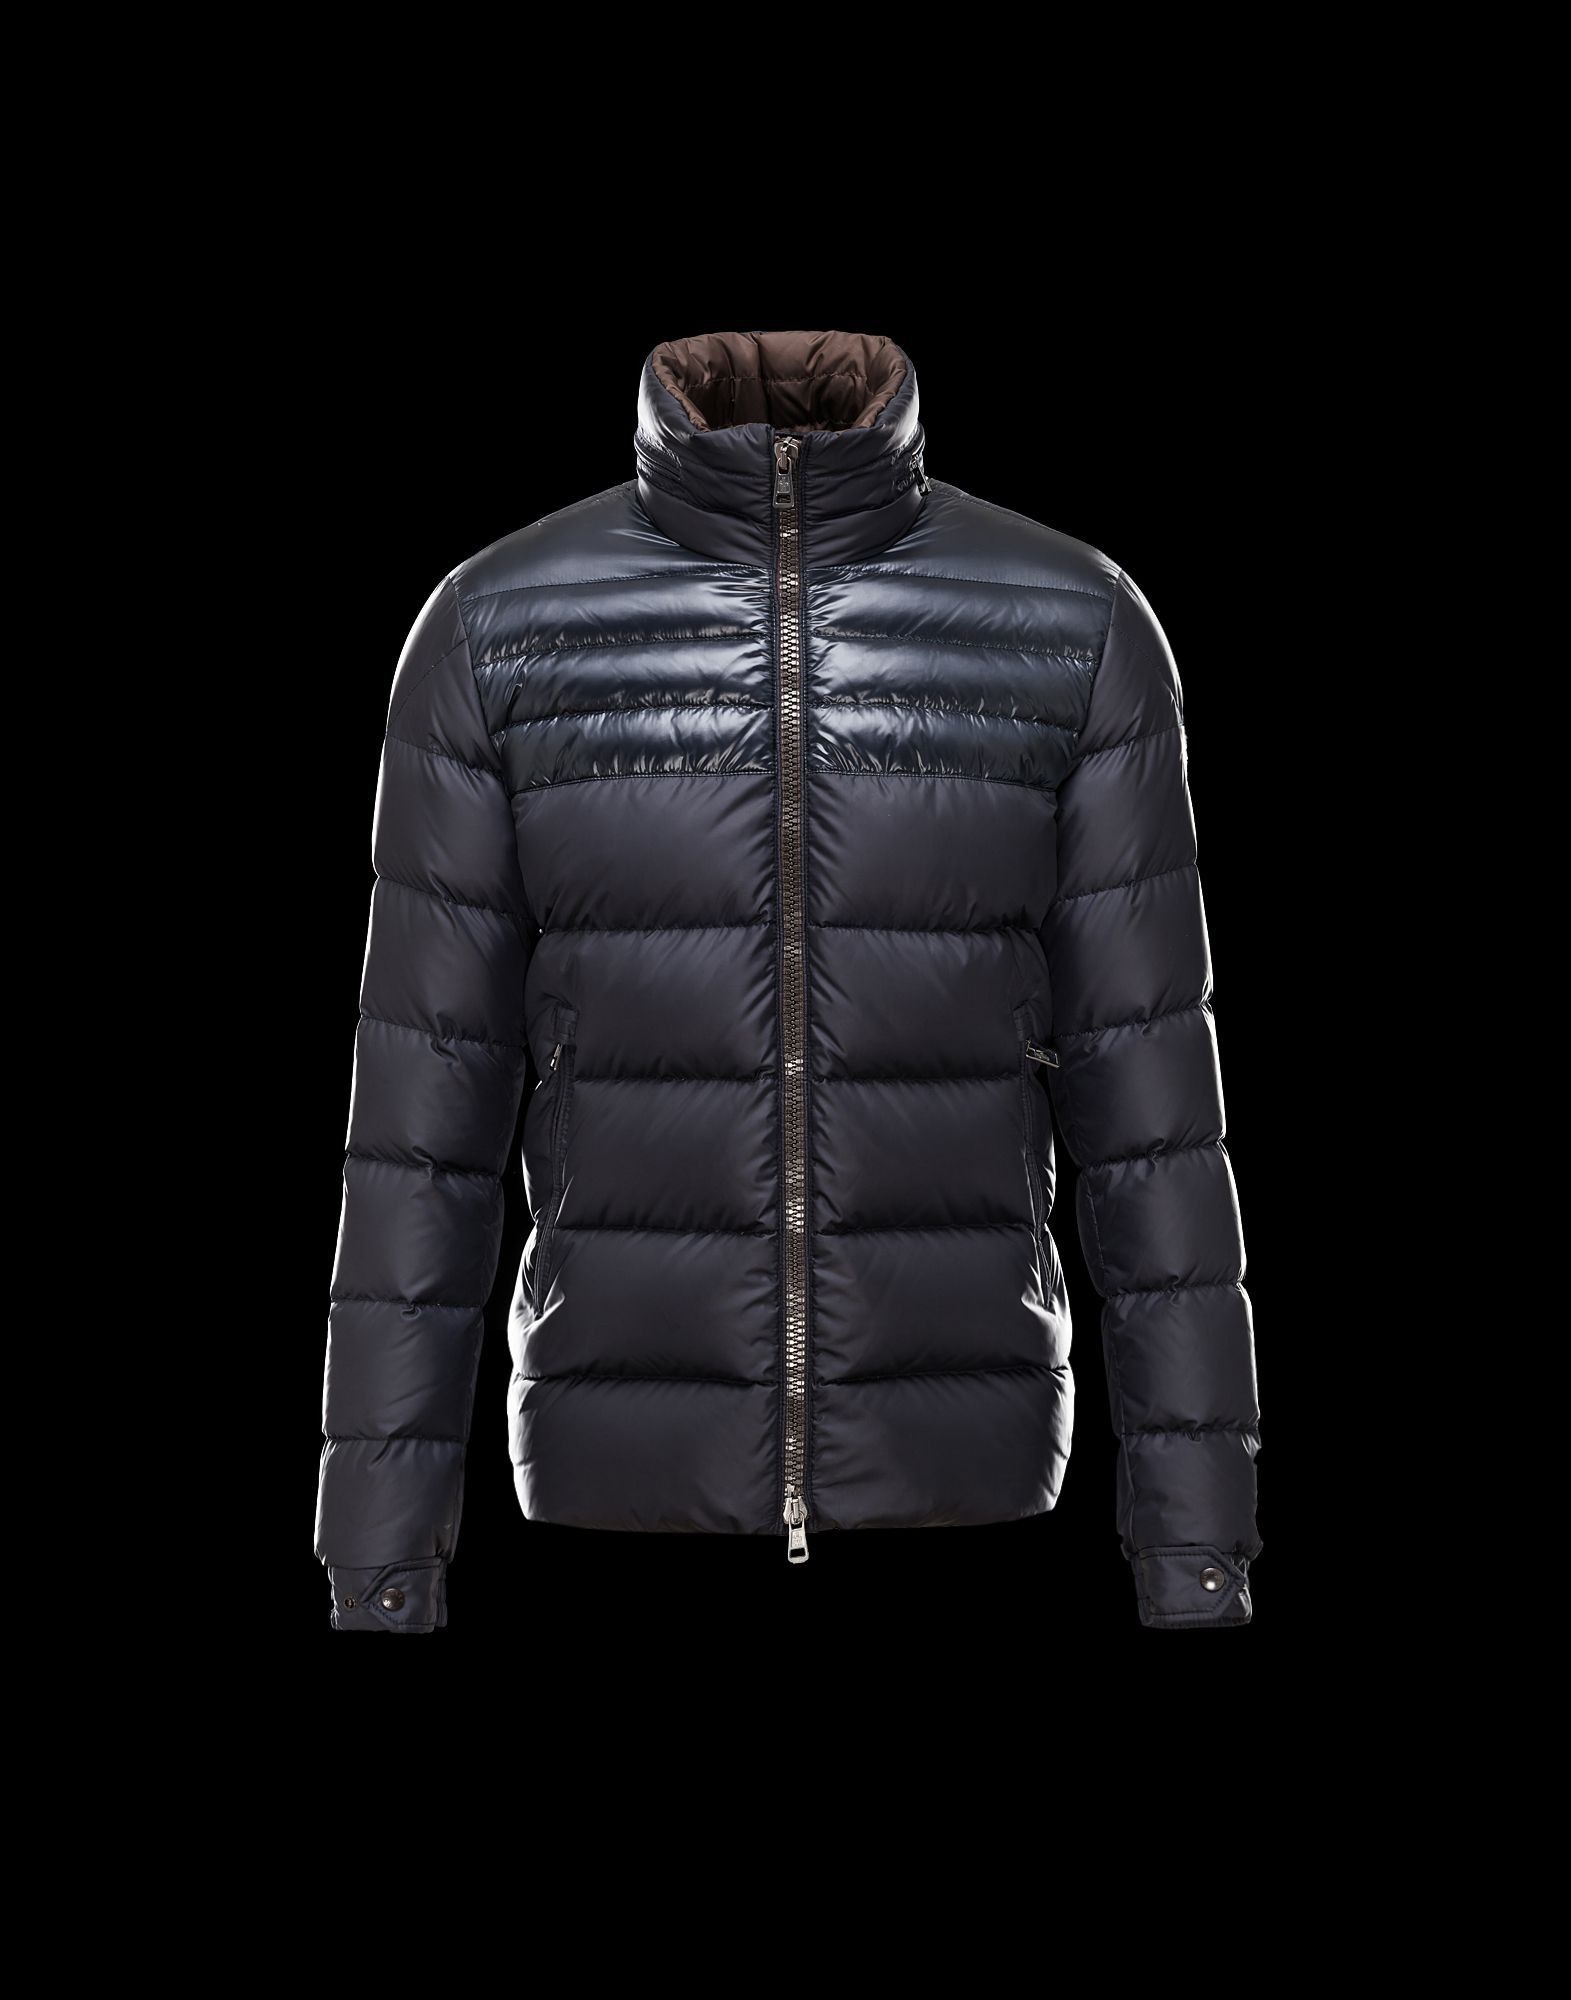 2014 Doudoune Moncler Homme noir. Find this Pin and more on fashion ... 6a38a07e472